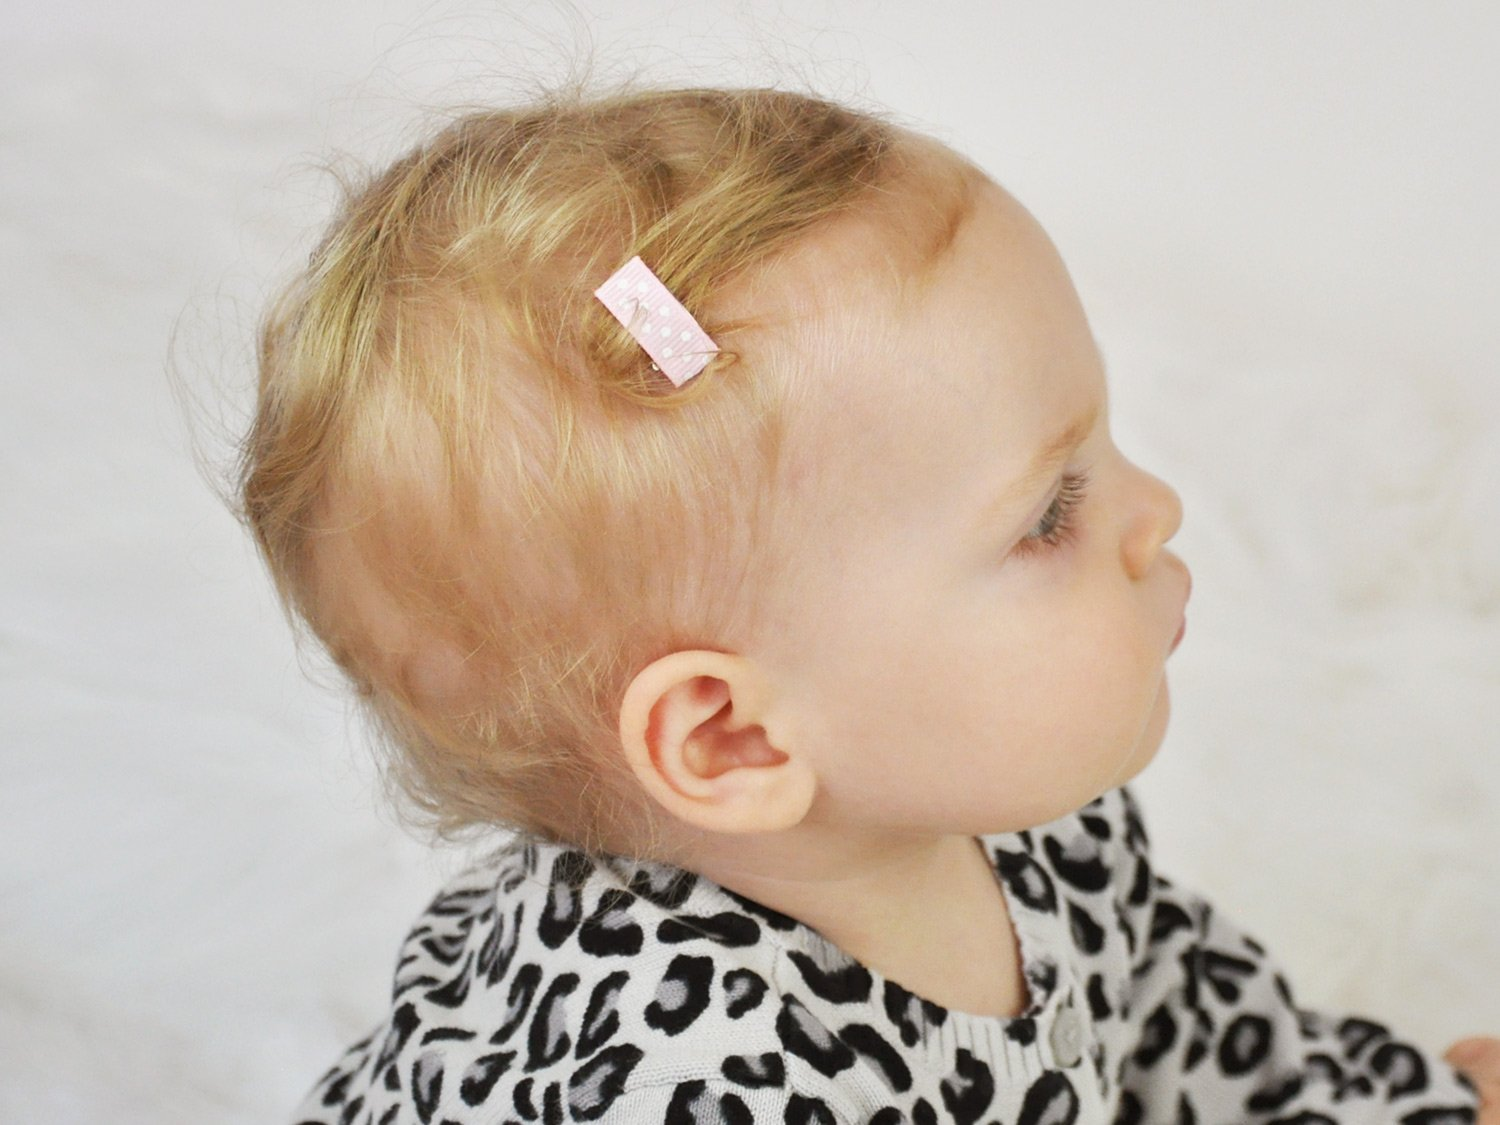 Baby Wisp 12 Mini Hair Clips Patterned Ribbon Baby Girls Infant Fine Hair Accessory Collection by Baby Wisp (Image #3)